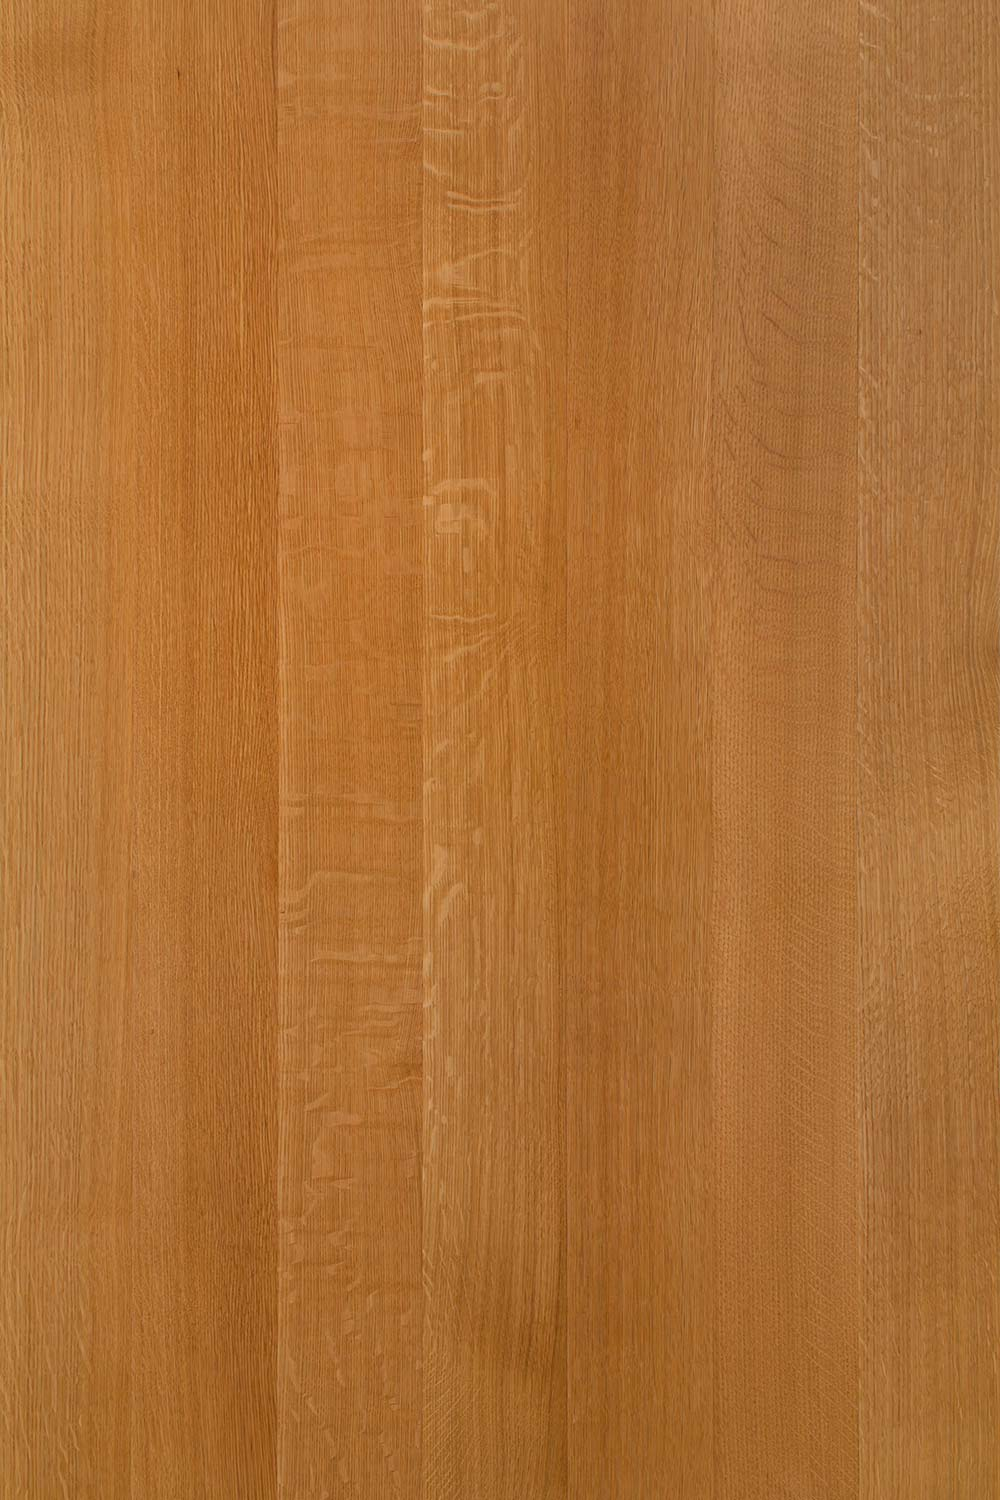 Premium Rift & Quartered White Oak